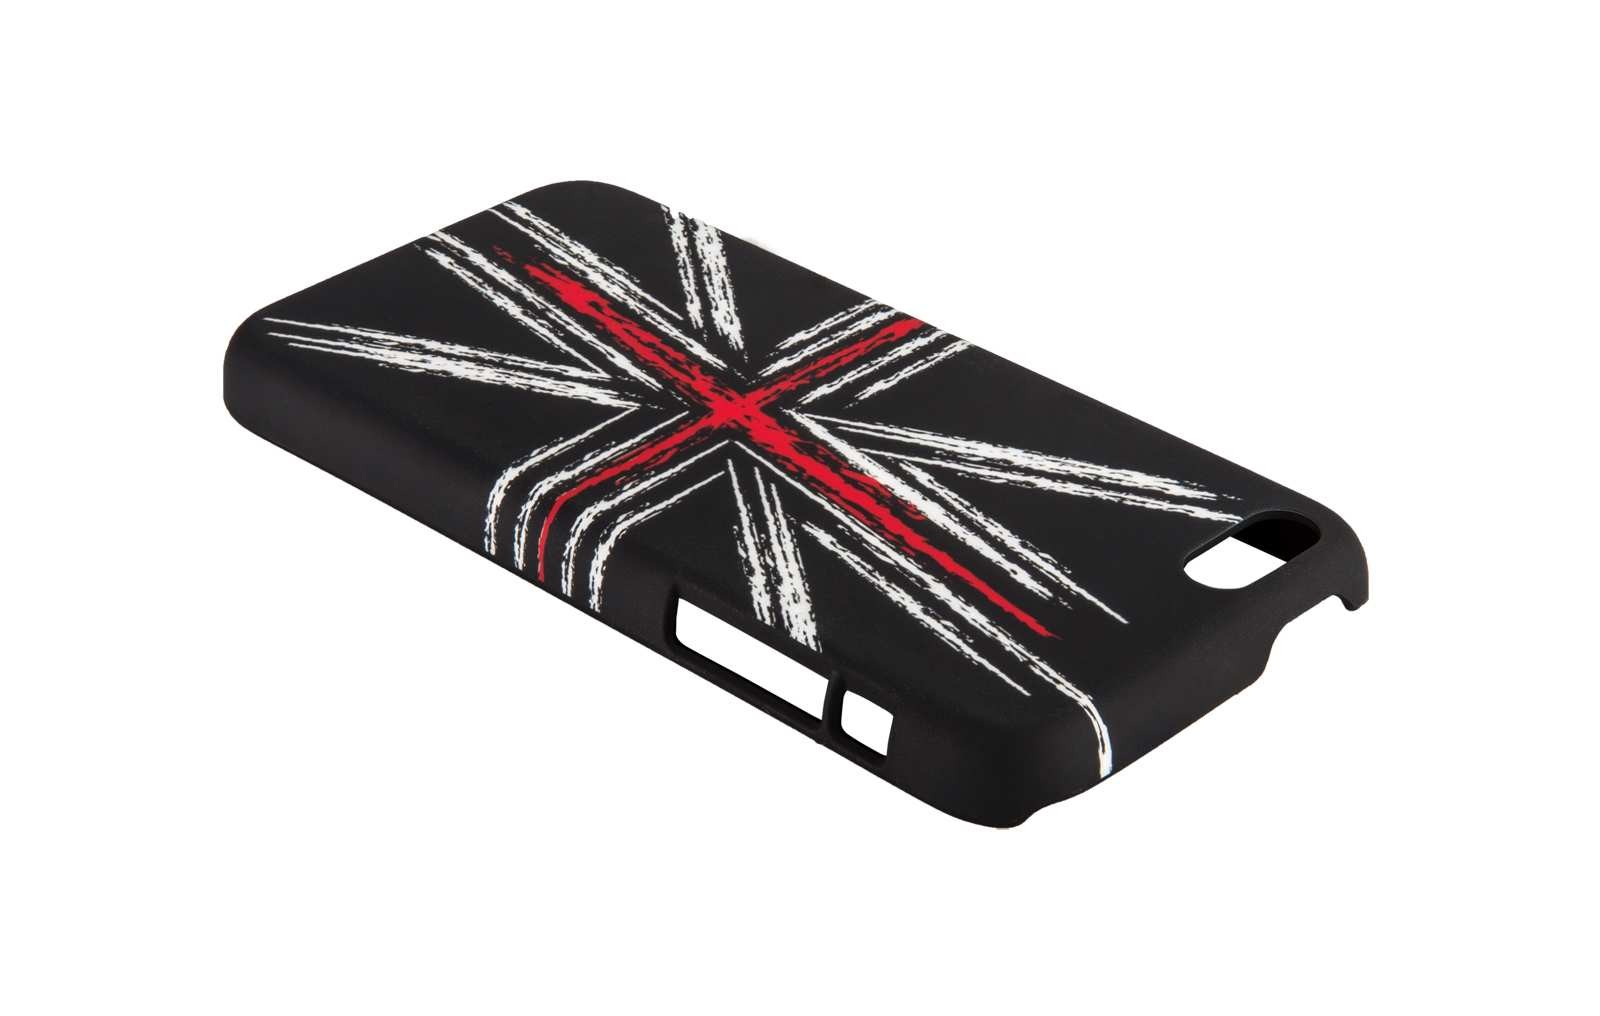 QDOS - Union Jack Chalkies for iPhone 5c - Black